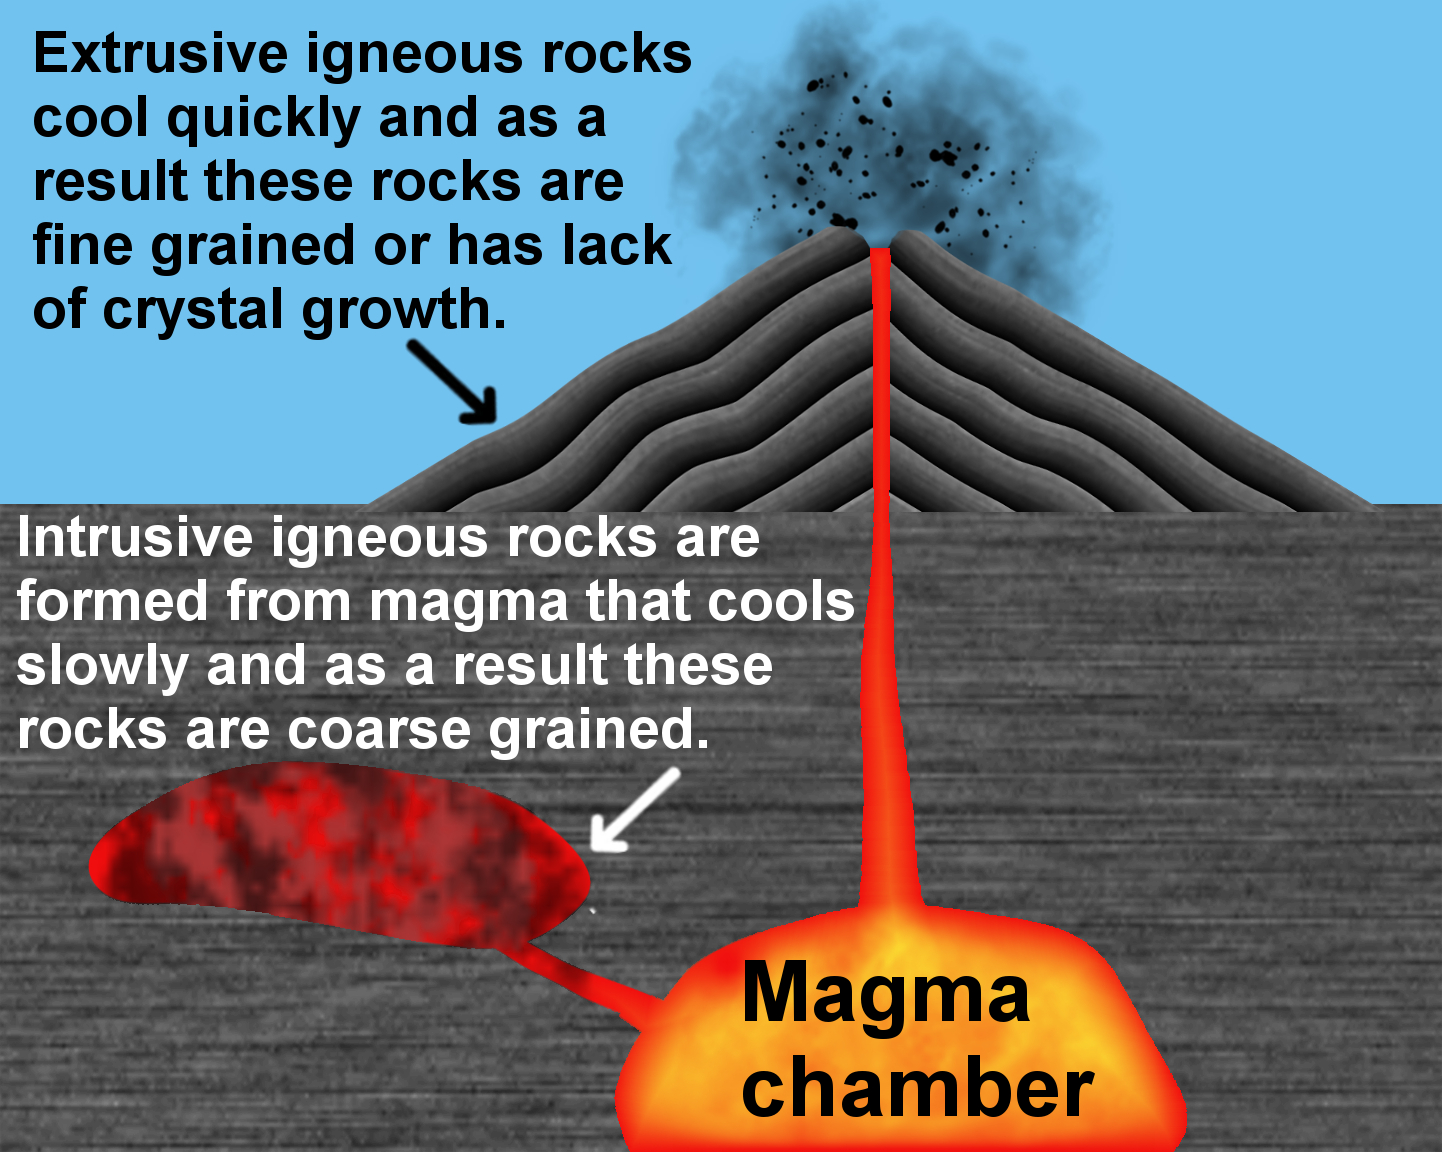 Fileigneous rock eng textg wikimedia commons fileigneous rock eng textg ccuart